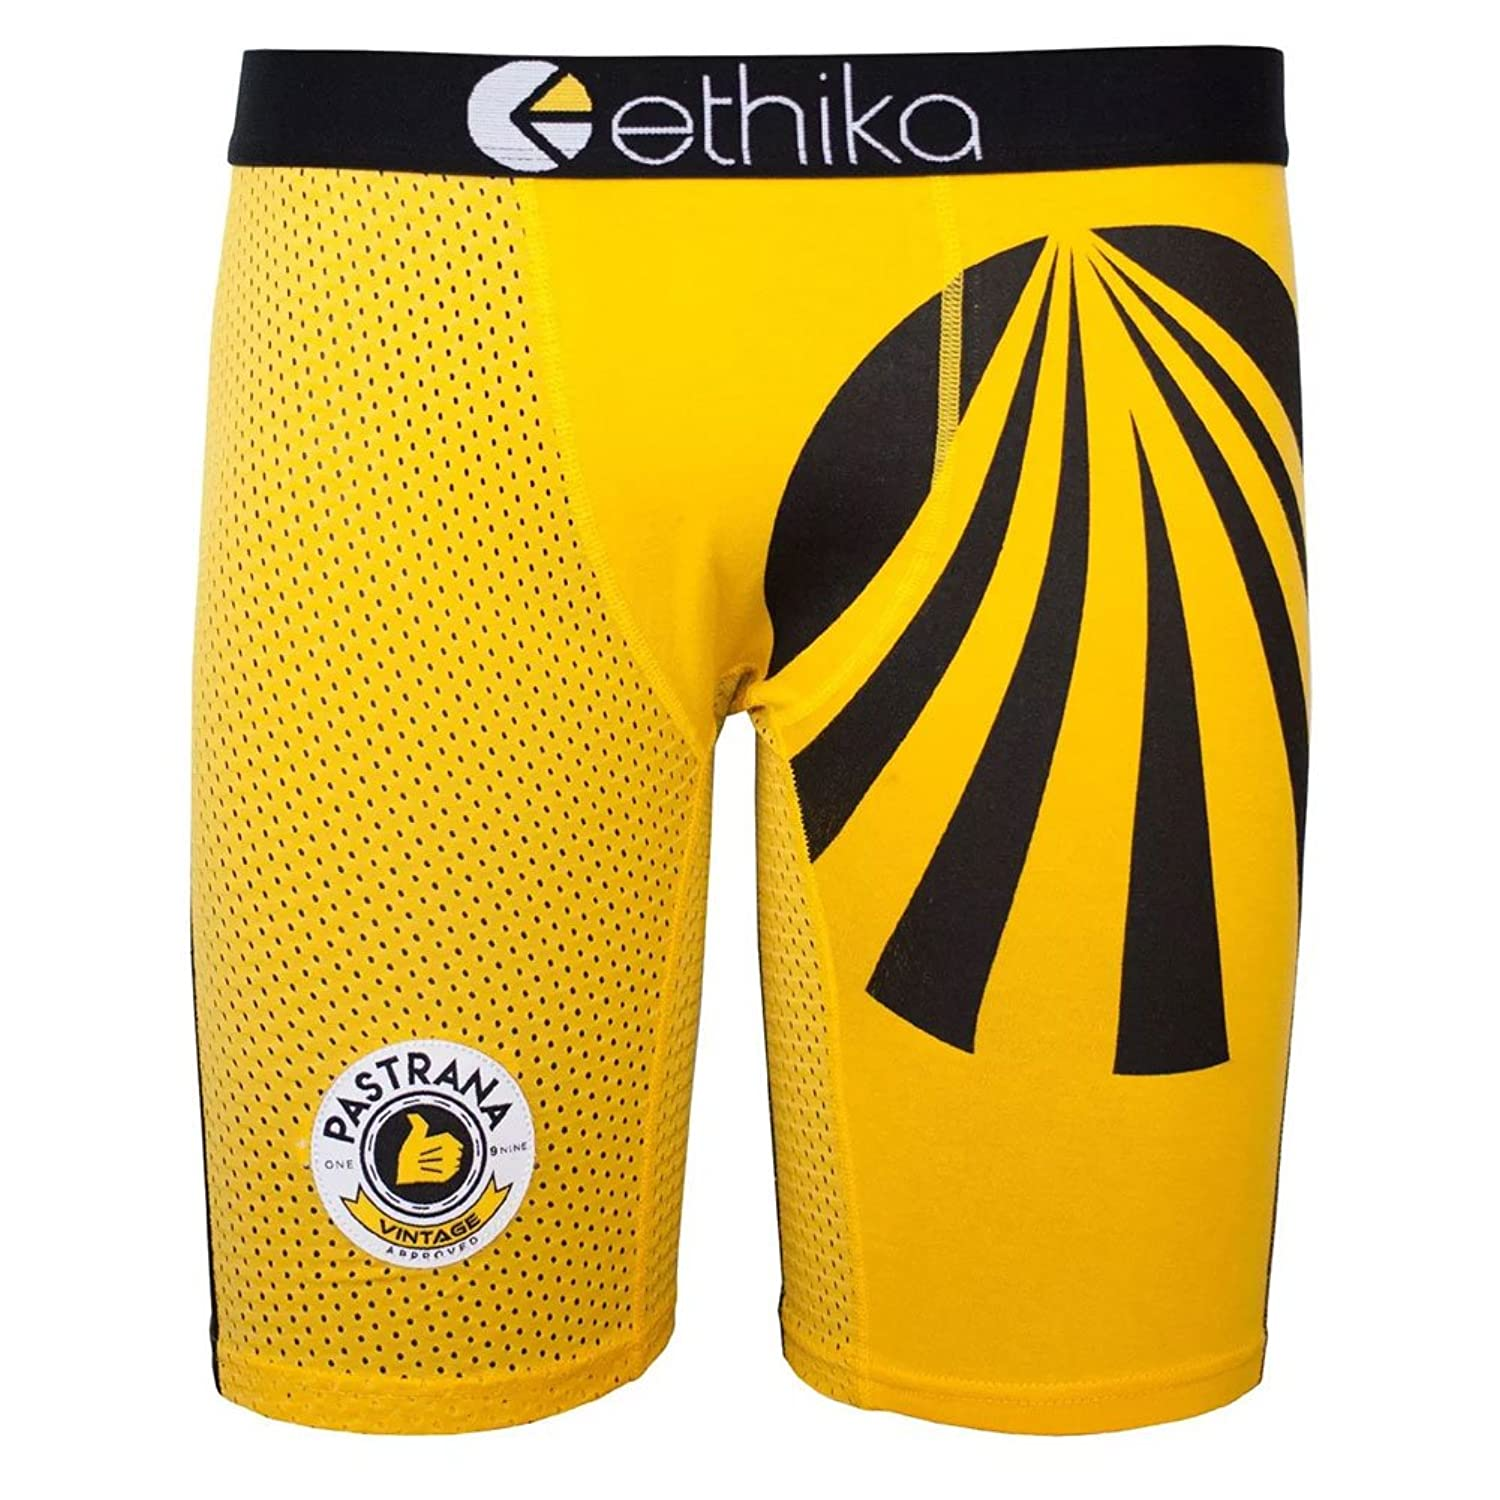 Ethika Men's The Staple Pastrana Vintage Howerton Underwear Yellow